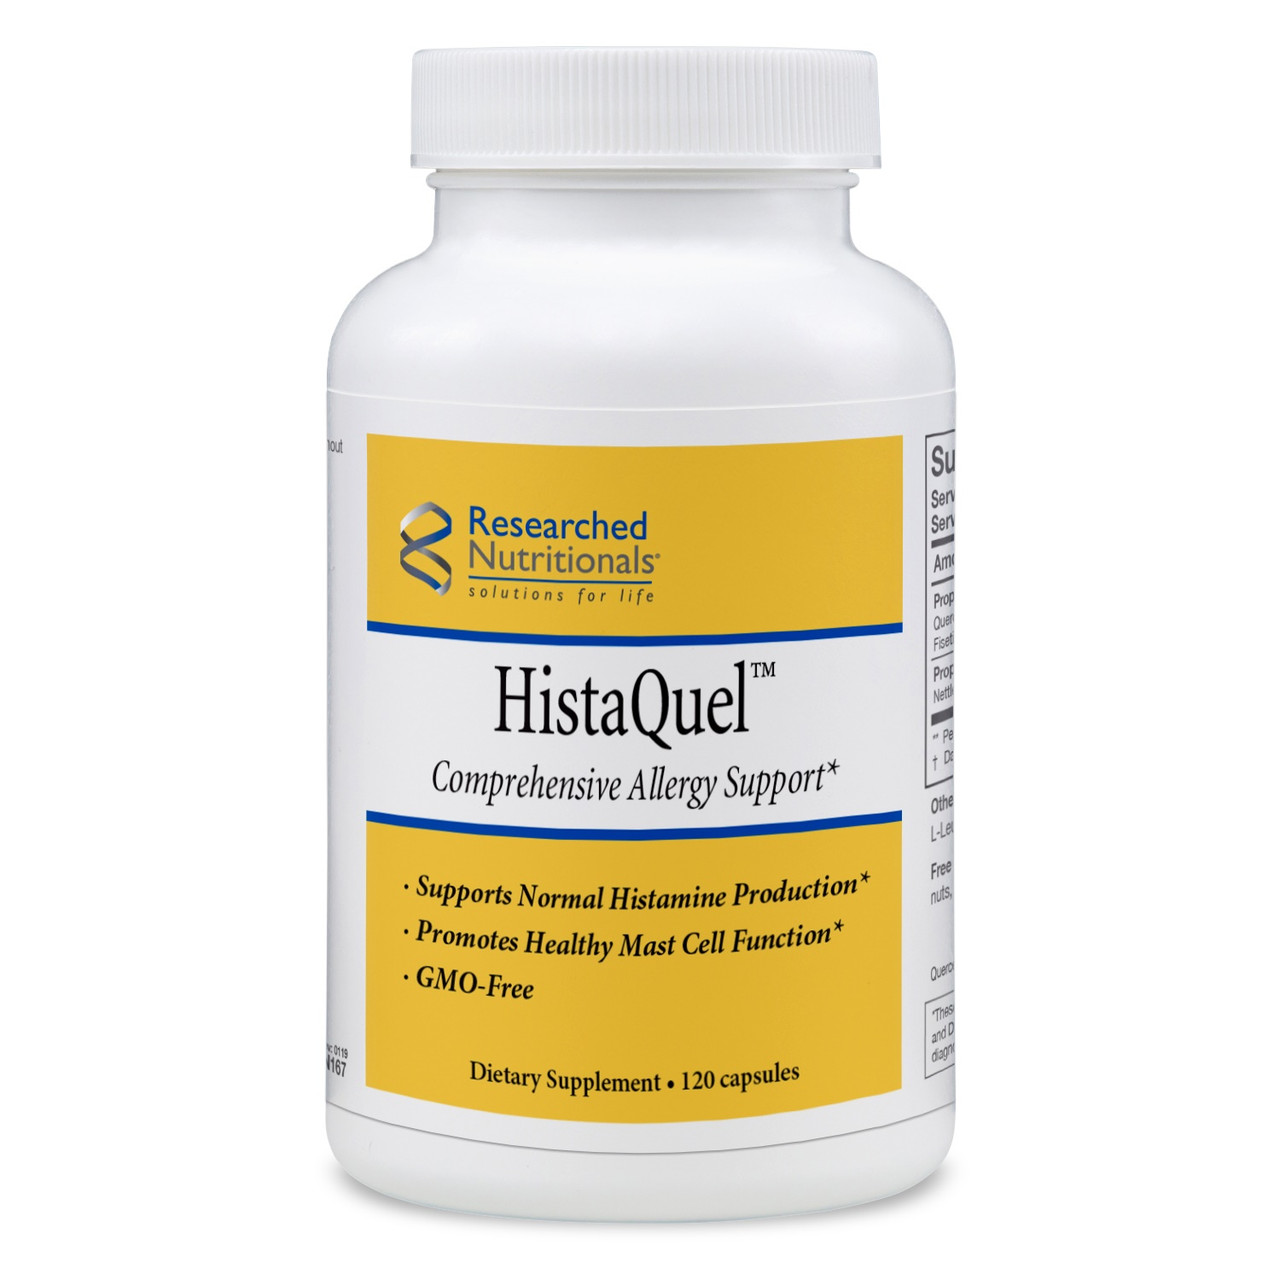 Researched Nutritionals HistaQuel 120 caps